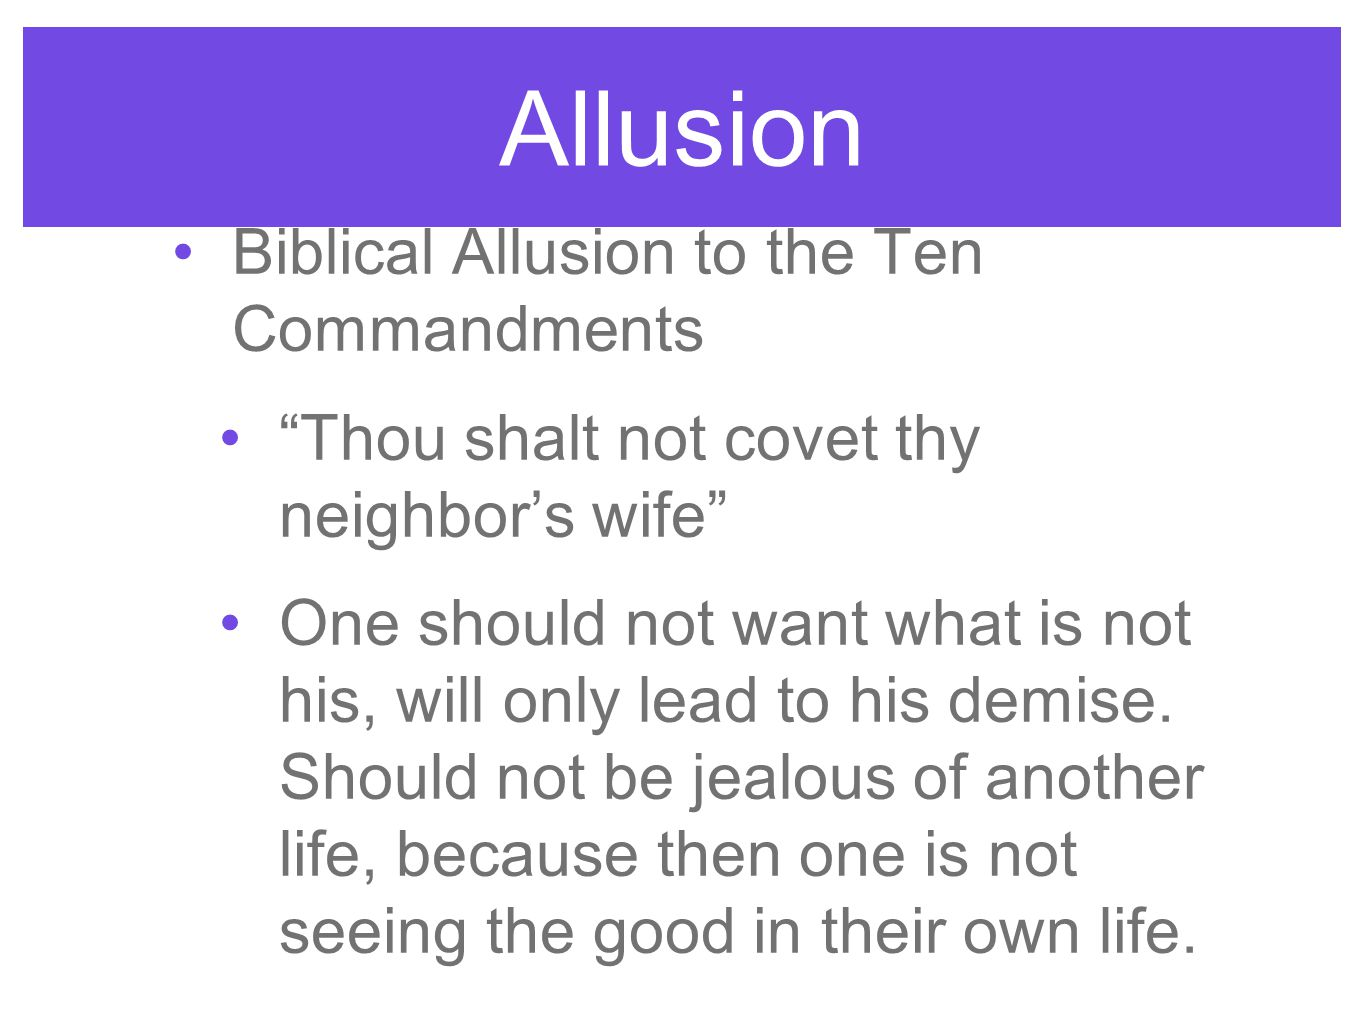 Allusion Biblical Allusion to the Ten Commandments